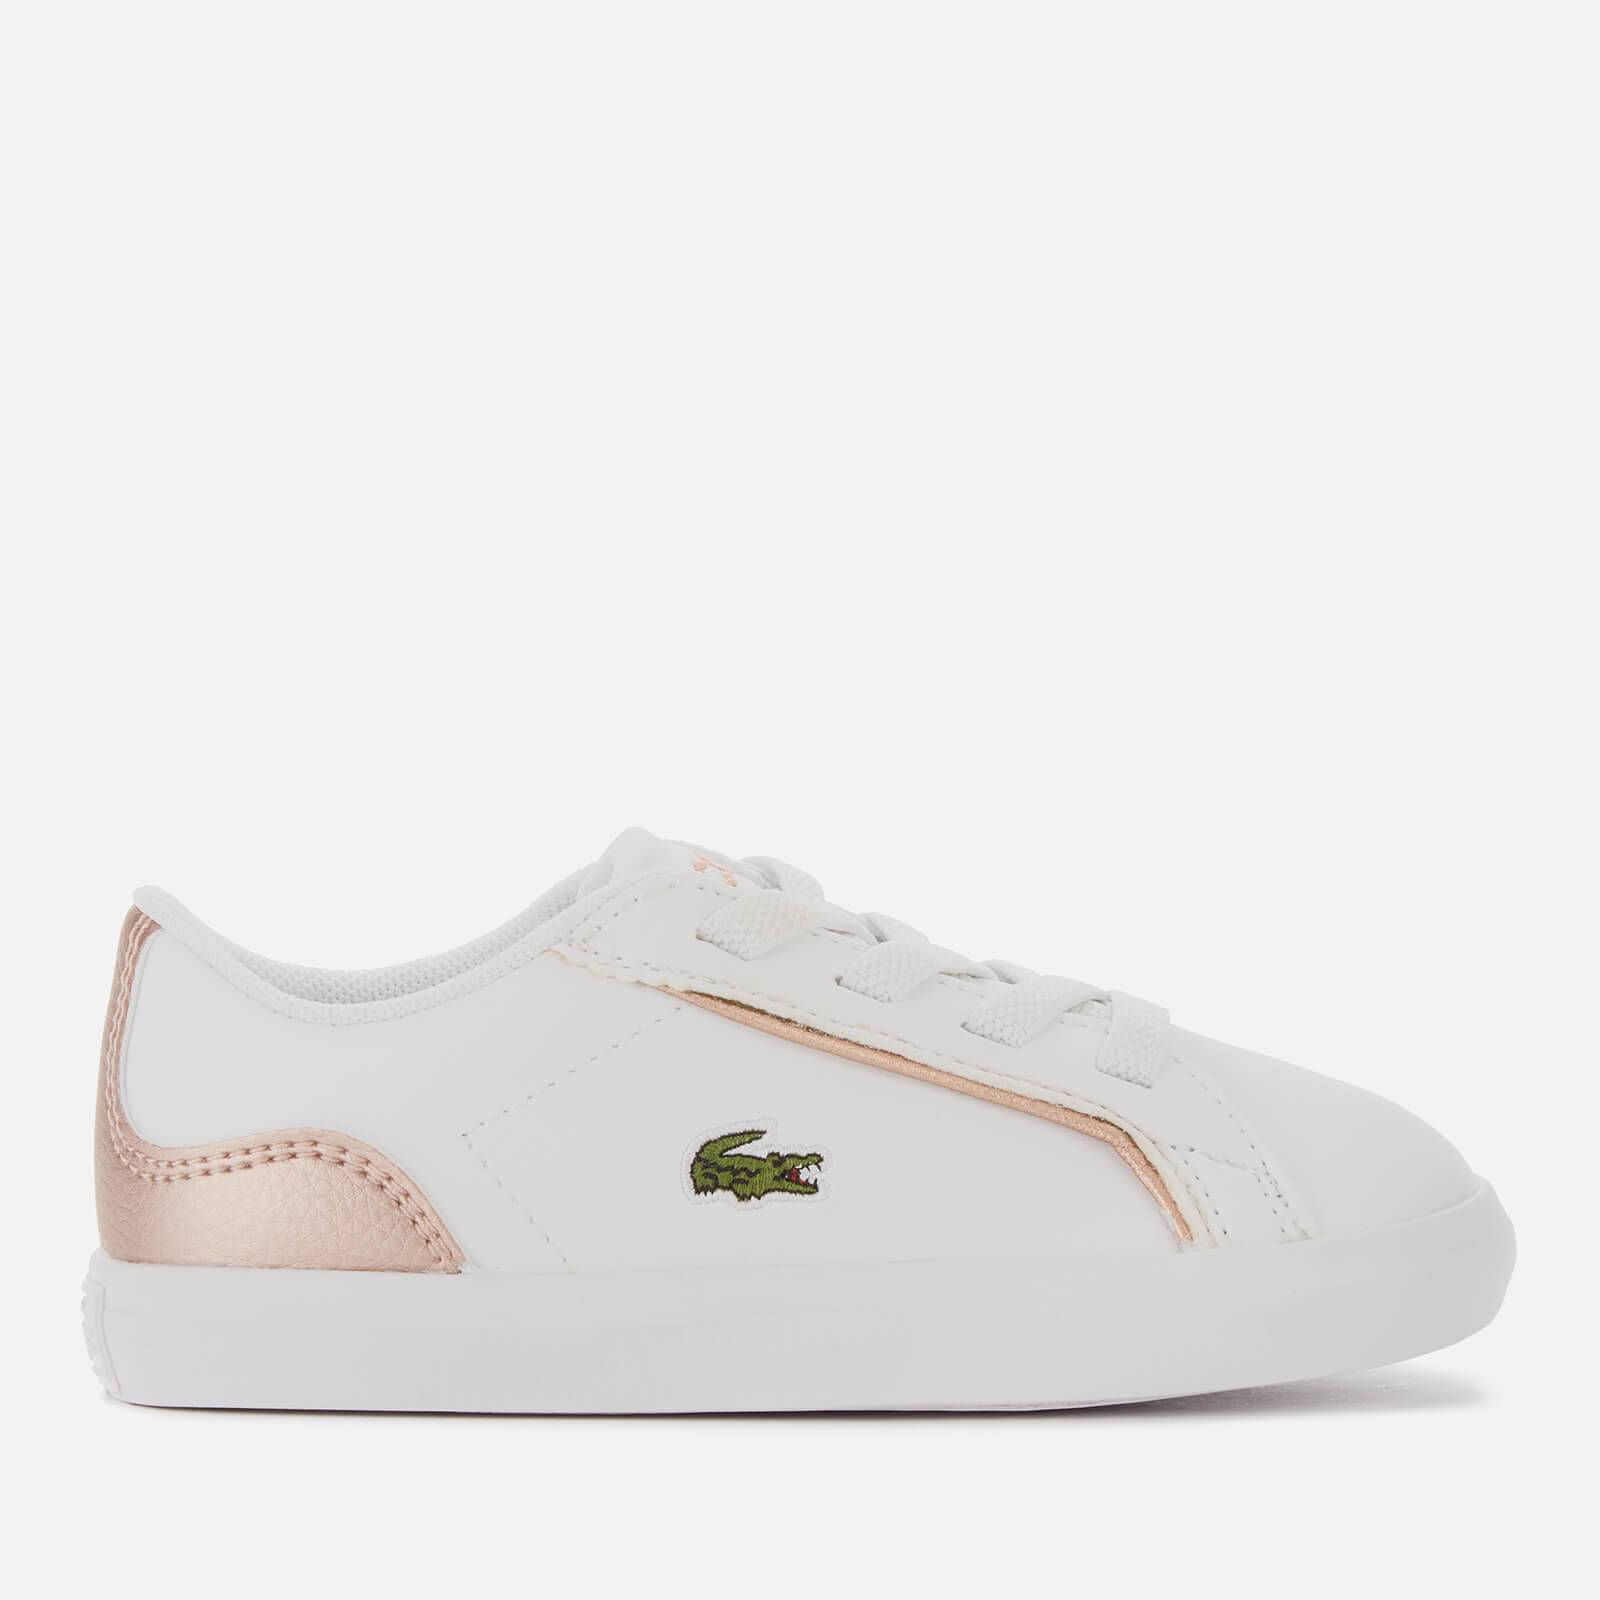 Lacoste Toddlers' Lerond Trainers - White/Pink - UK 7 Toddler